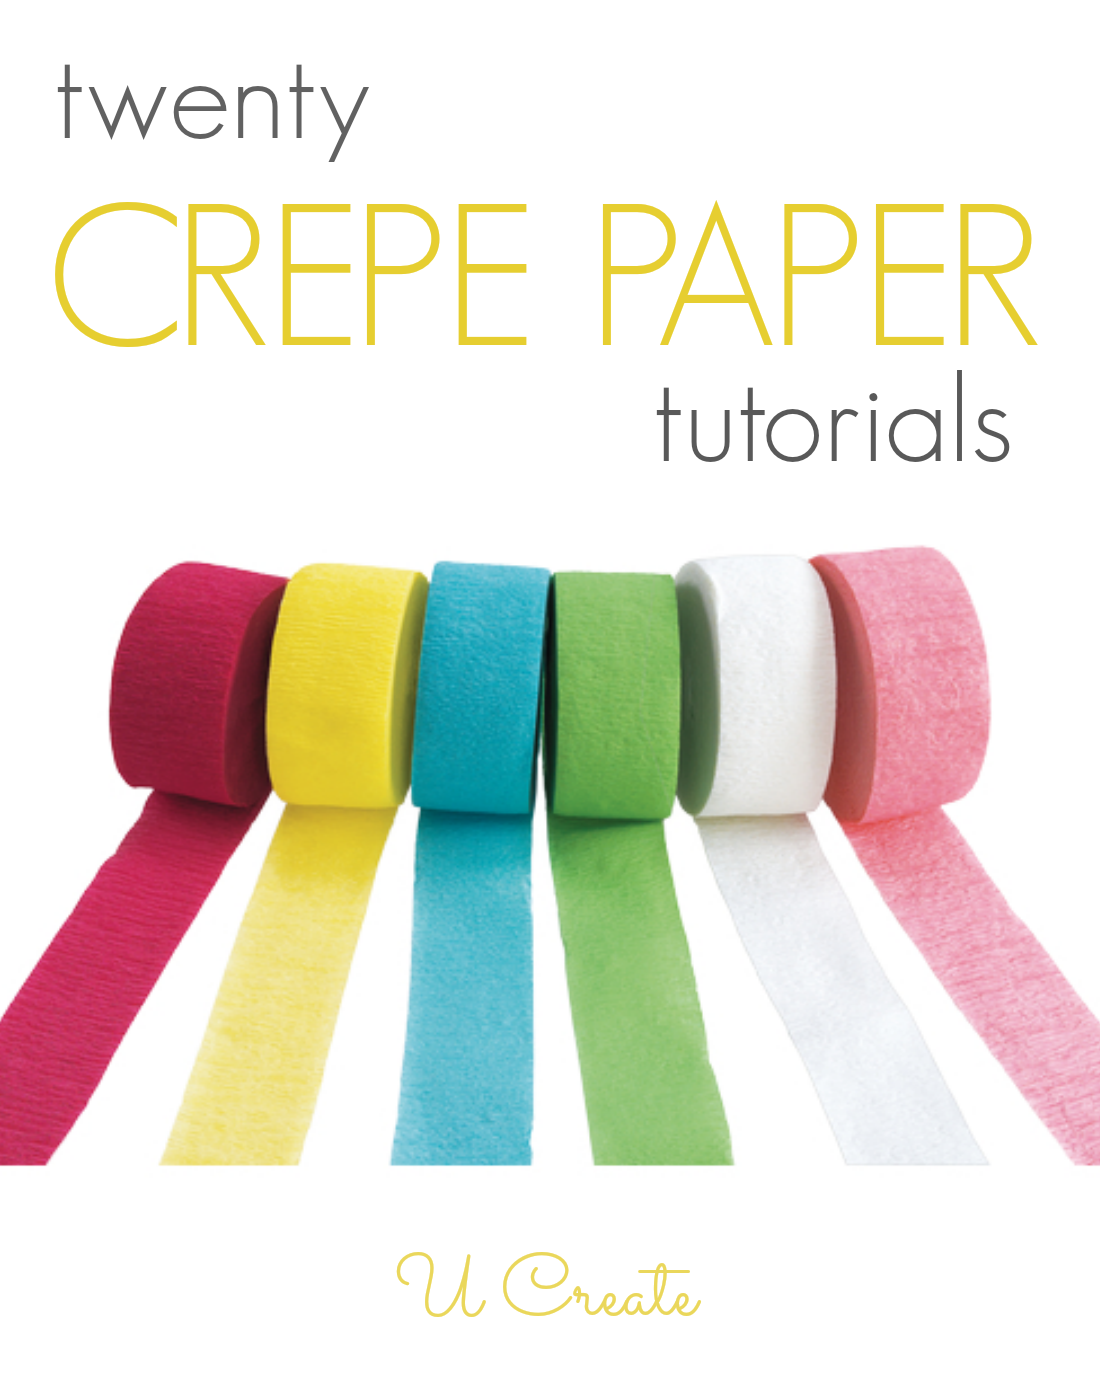 Many tutorials using inexpensive crepe paper! It's not just for decorating at parties anymore!